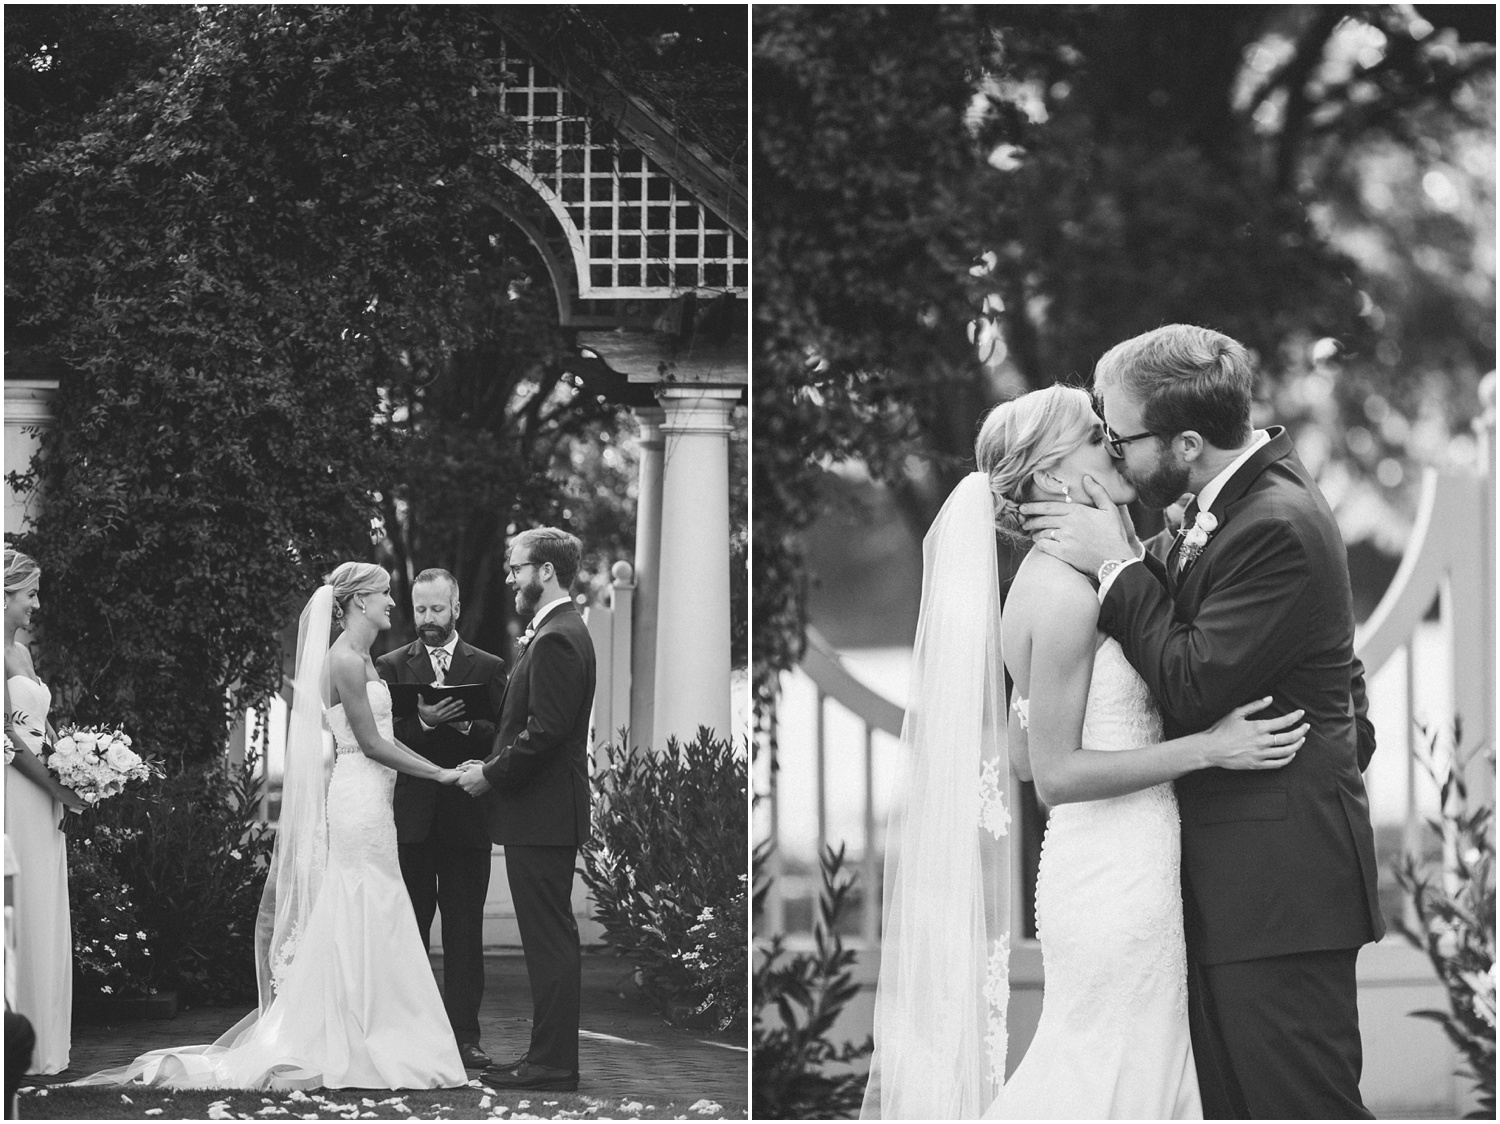 DSBG Wedding | Amore Vita Photography_0021.jpg